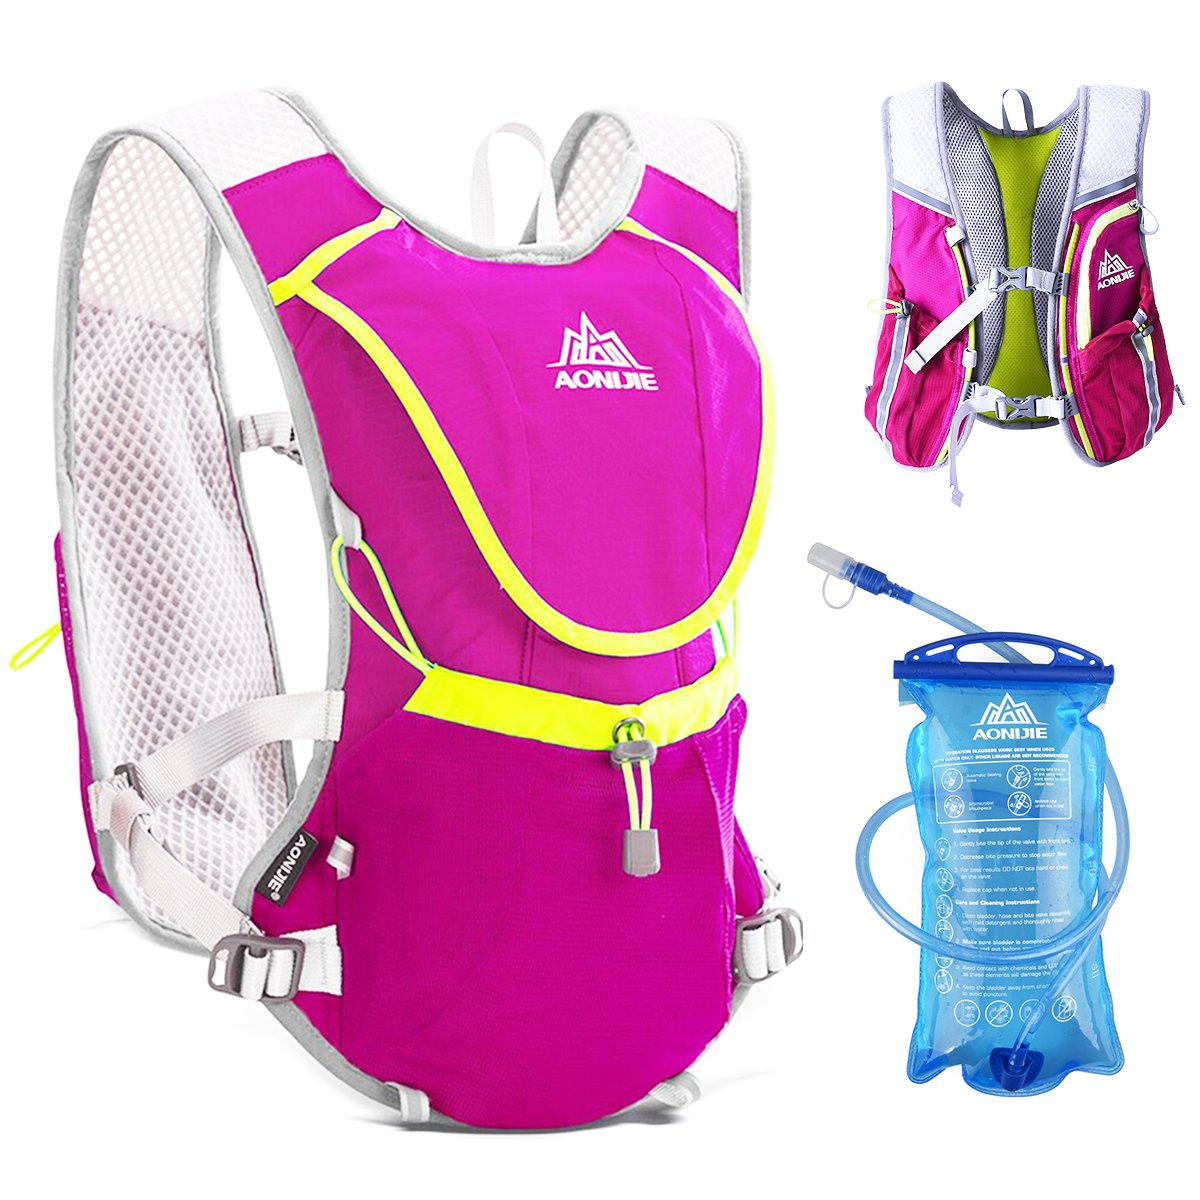 jeelad Running Hydration PackバックパックHydration Vest forマラソンランニングRaceサイクリング B071JYD8XY Rose Red (8L) with 2 Soft Water Bottles